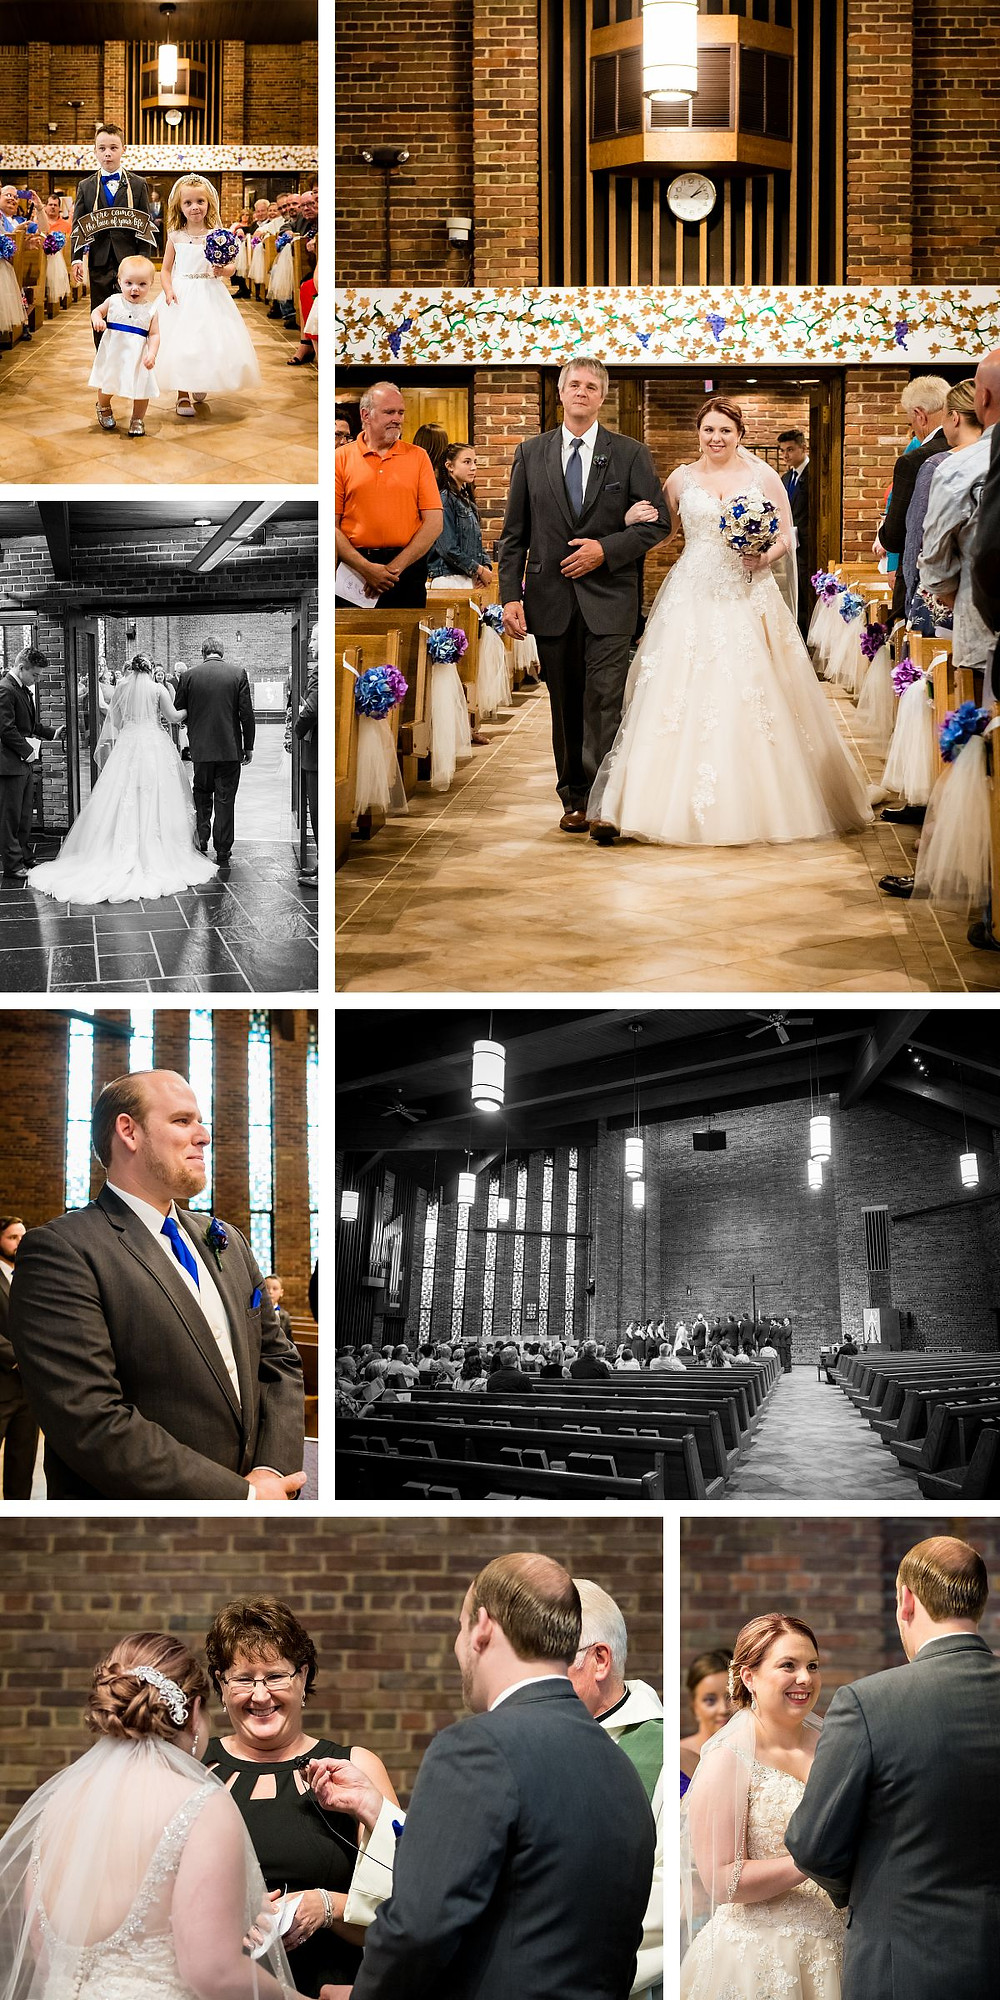 Lutheran wedding ceremony in Green Bay, Wisconsin Wedding Photographer